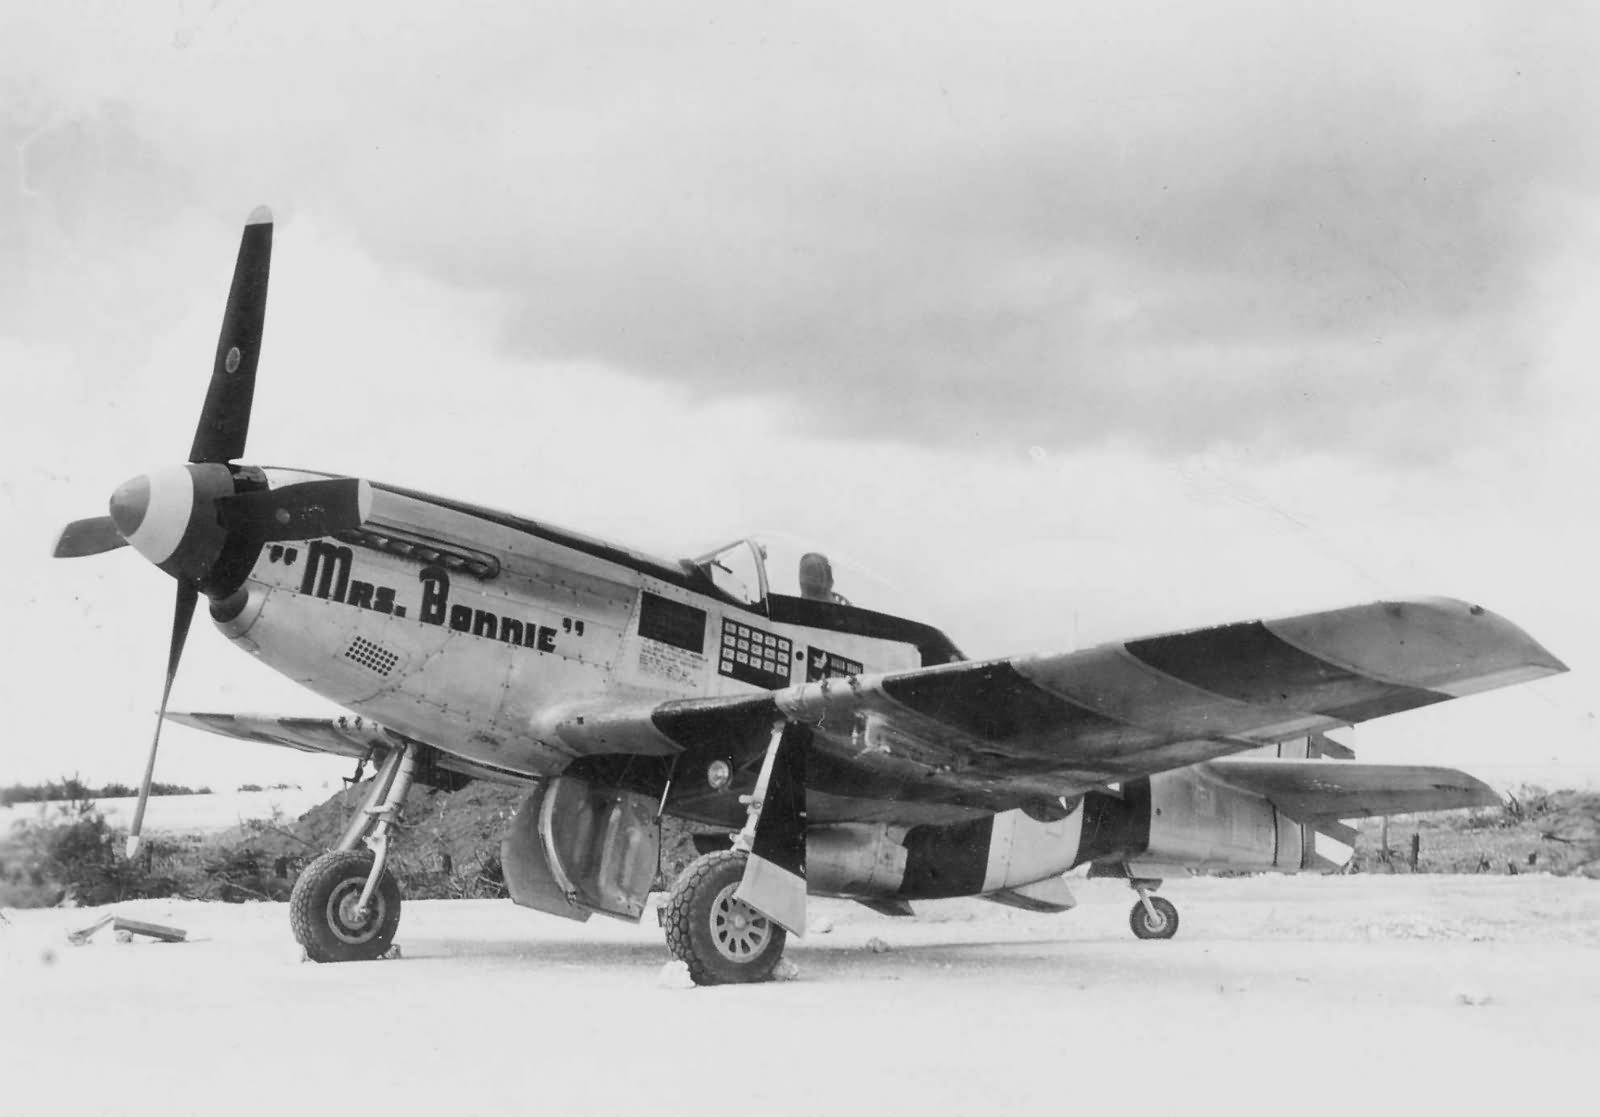 P-51K_Mustang_348th_Fighter_Group.jpg